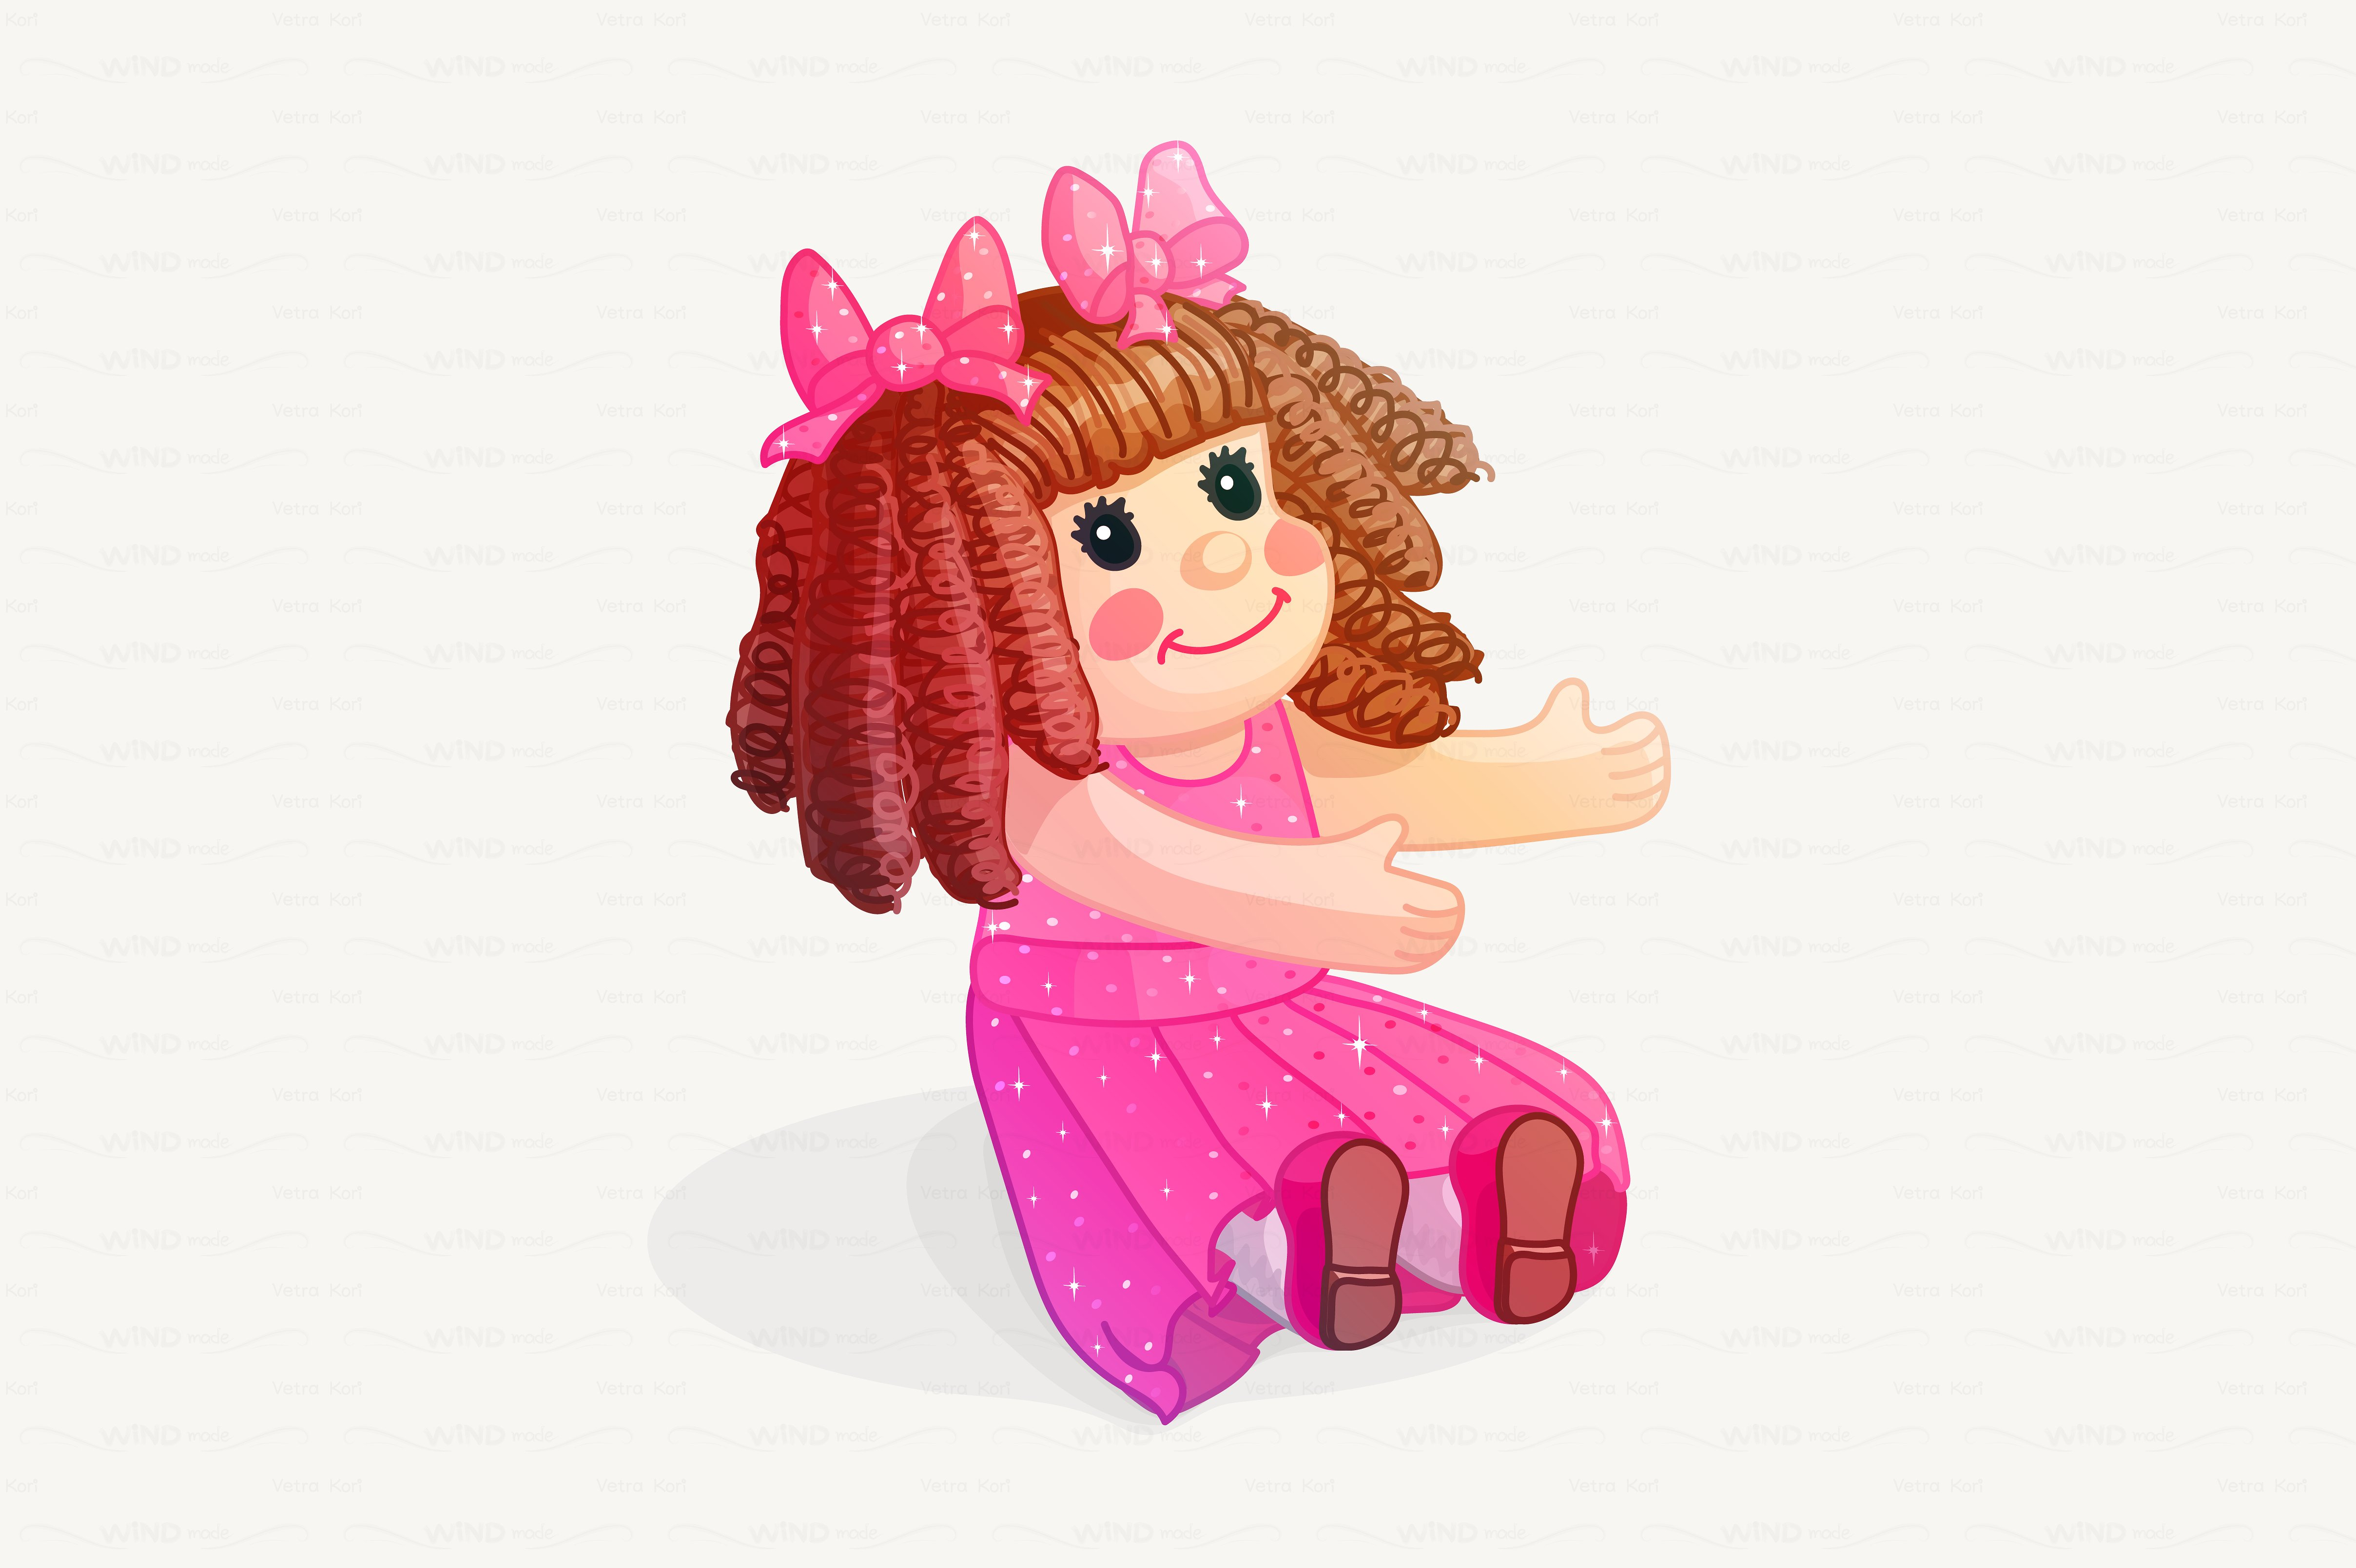 Clipart Of Doll.